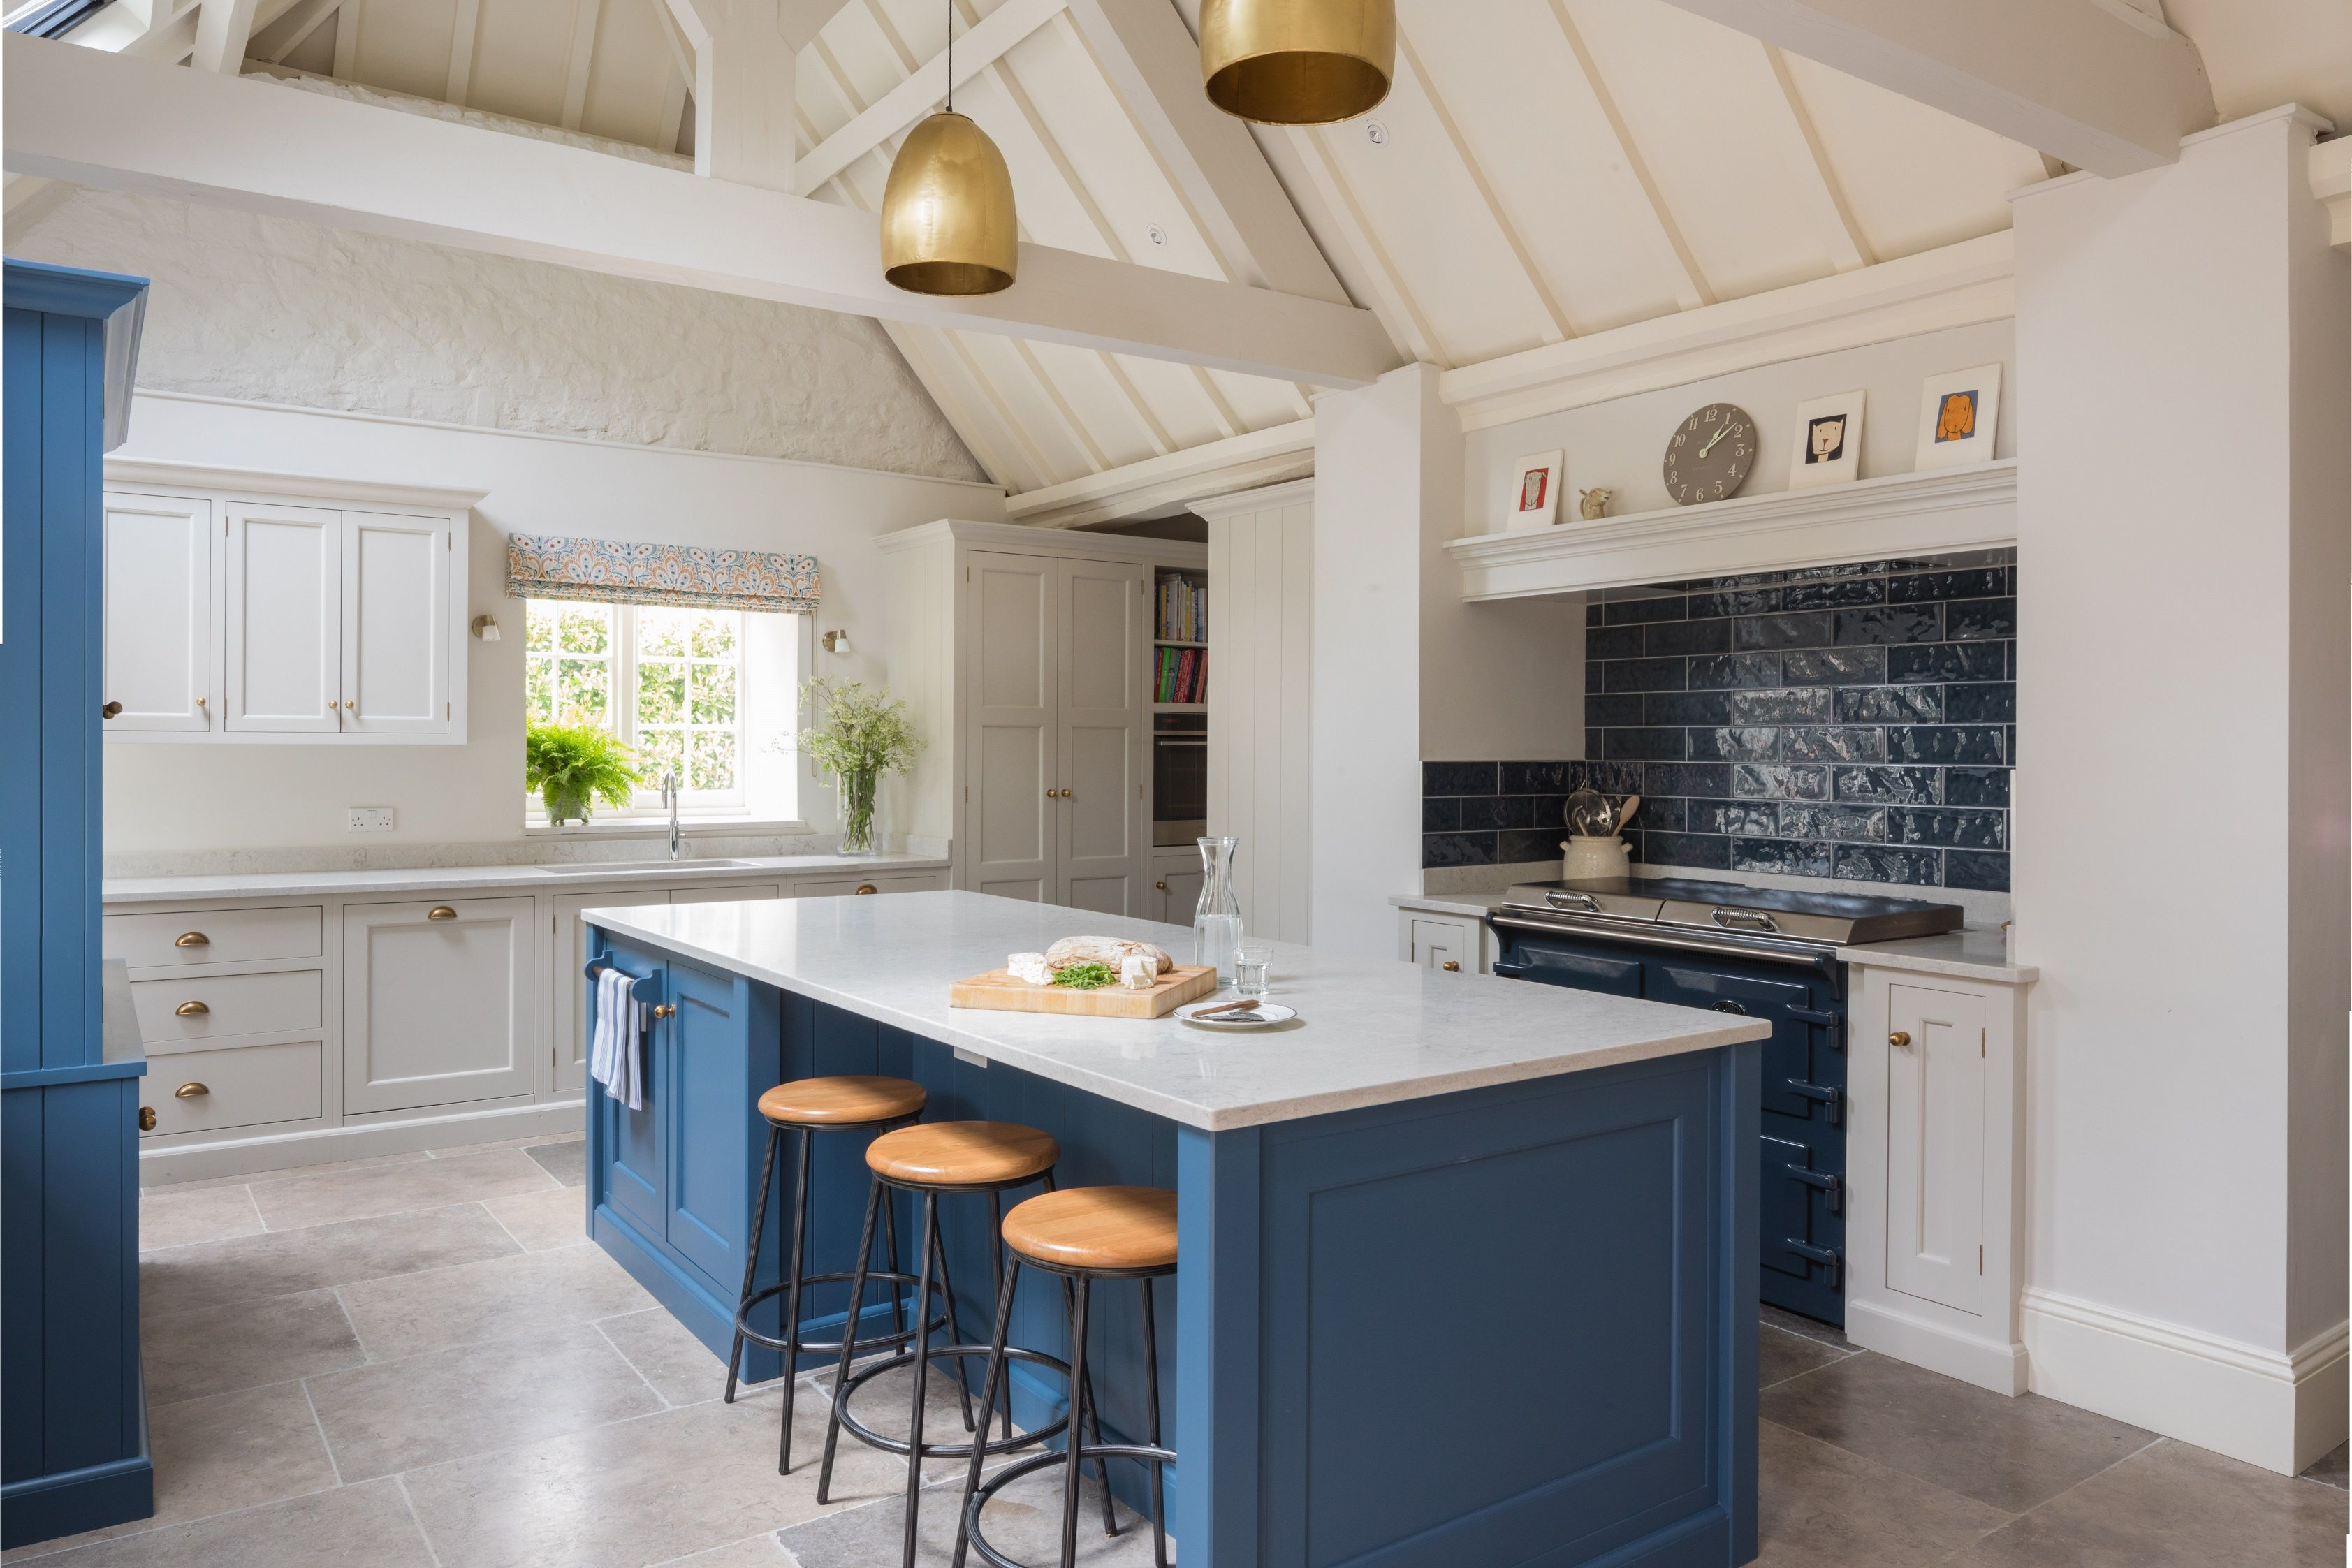 Little Greene Slaked Lime Mid Walls Cabinets In Lg Deep Are Complimented By The Contrasting Bold Hicks Blue Island And Marry Bea Kitchen Color Kitchen Colors